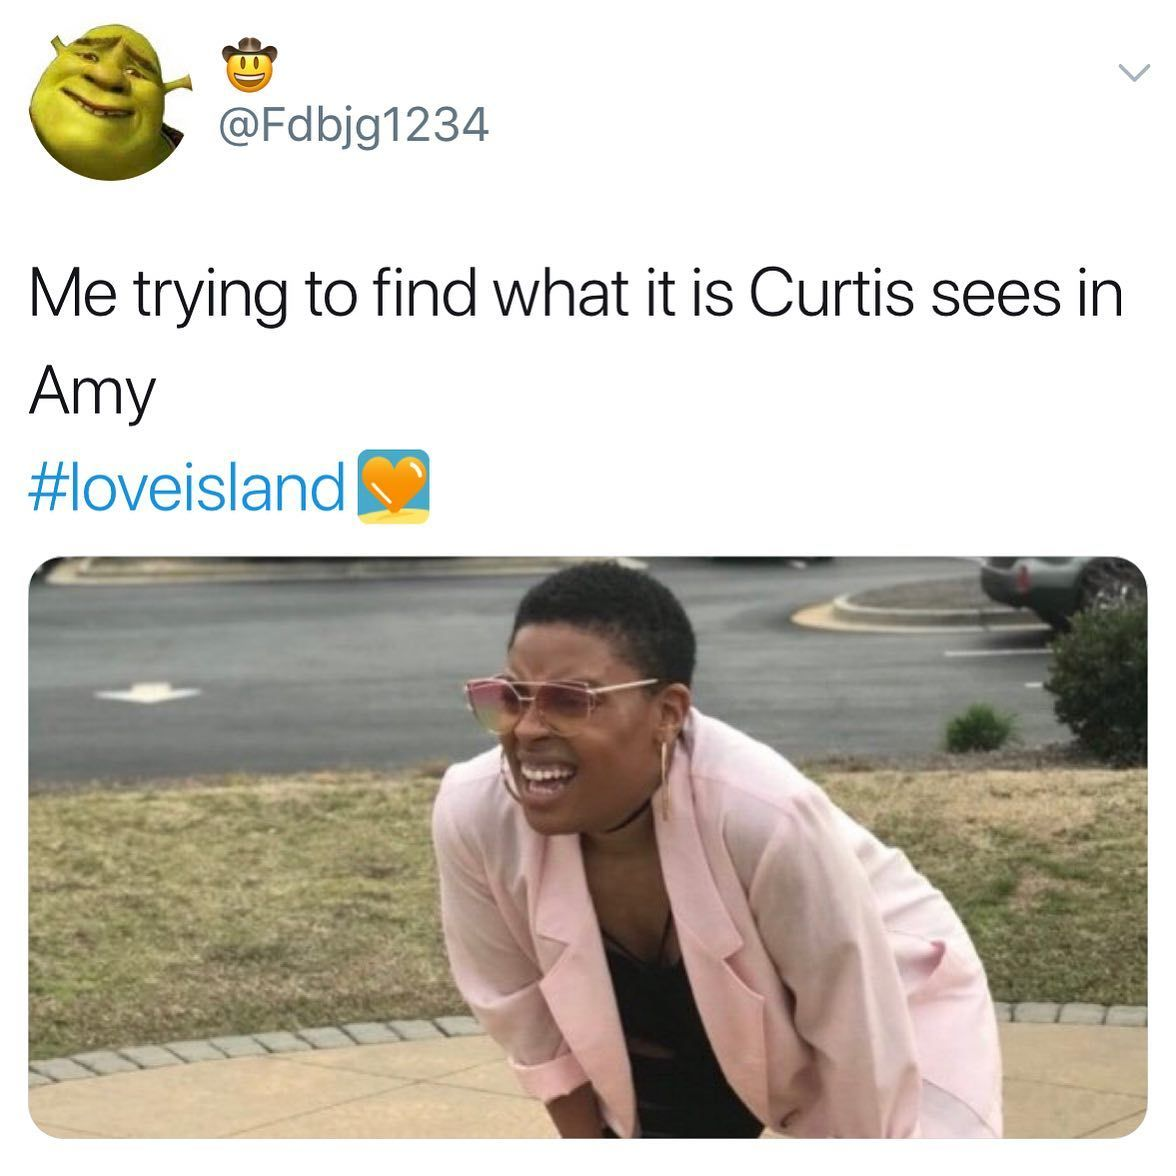 Image may contain: Love Island week two memes, Love Island, memes, reactions, tweet, funny, savage, meme, Curtis, Amy,  Lab Coat, Coat, Person, Human, Clothing, Apparel